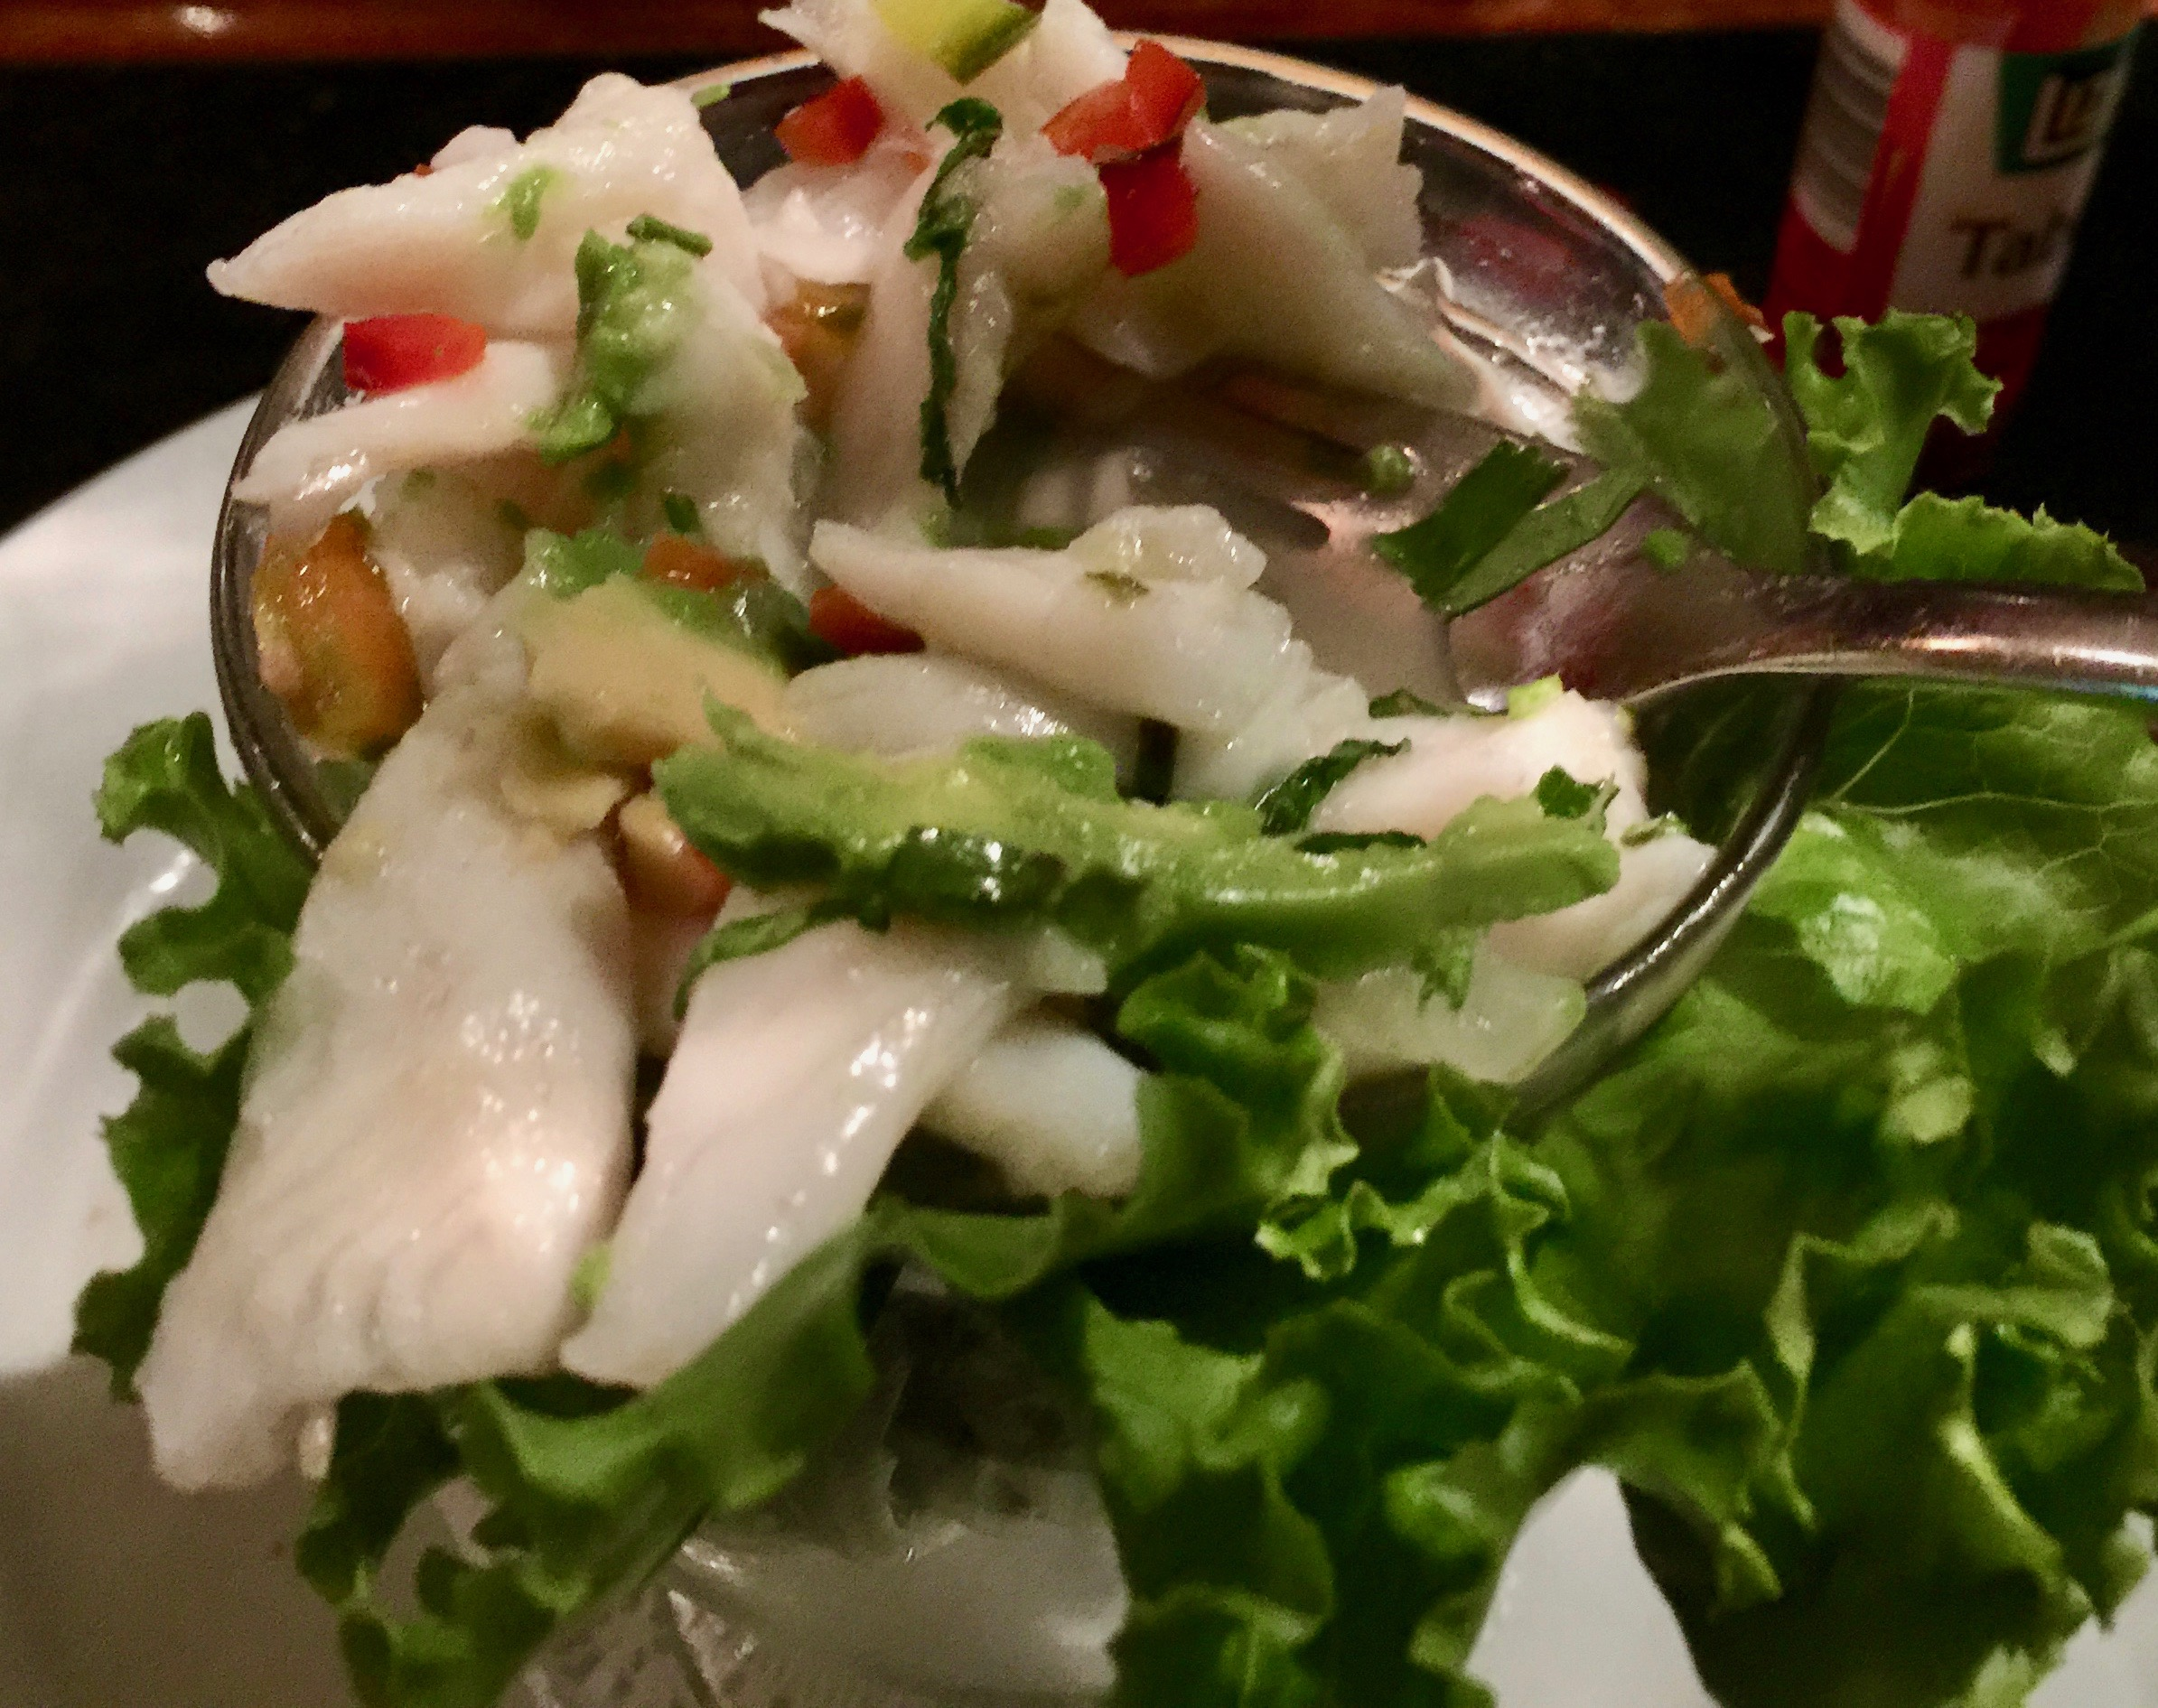 Ceviche is good on the Caribbean Coast - You can get fresh and delicious ceviche in Puerto Viejo and Cahuita.